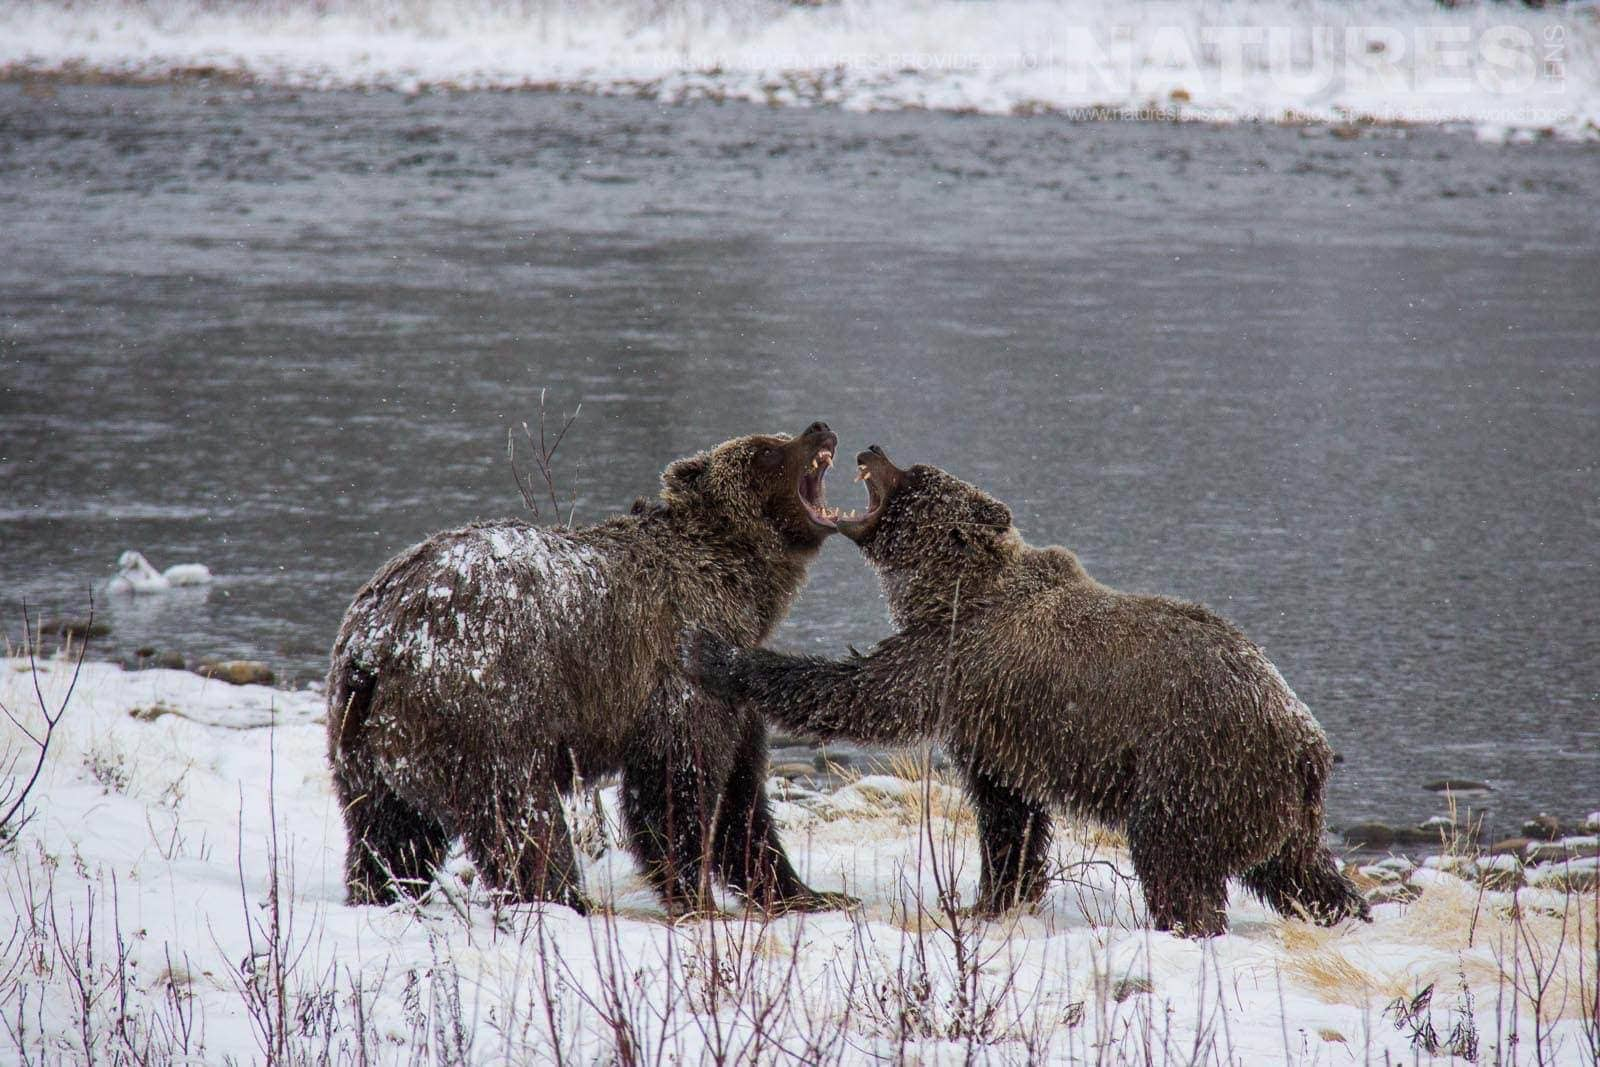 A Pair Of Sparring You Grizzly Bears On The Banks Of The Fishing Branch River Typical Of The Kind Of Image That May Be Captured On The NaturesLens Ice Bears Of The Yukon Photographic Holiday